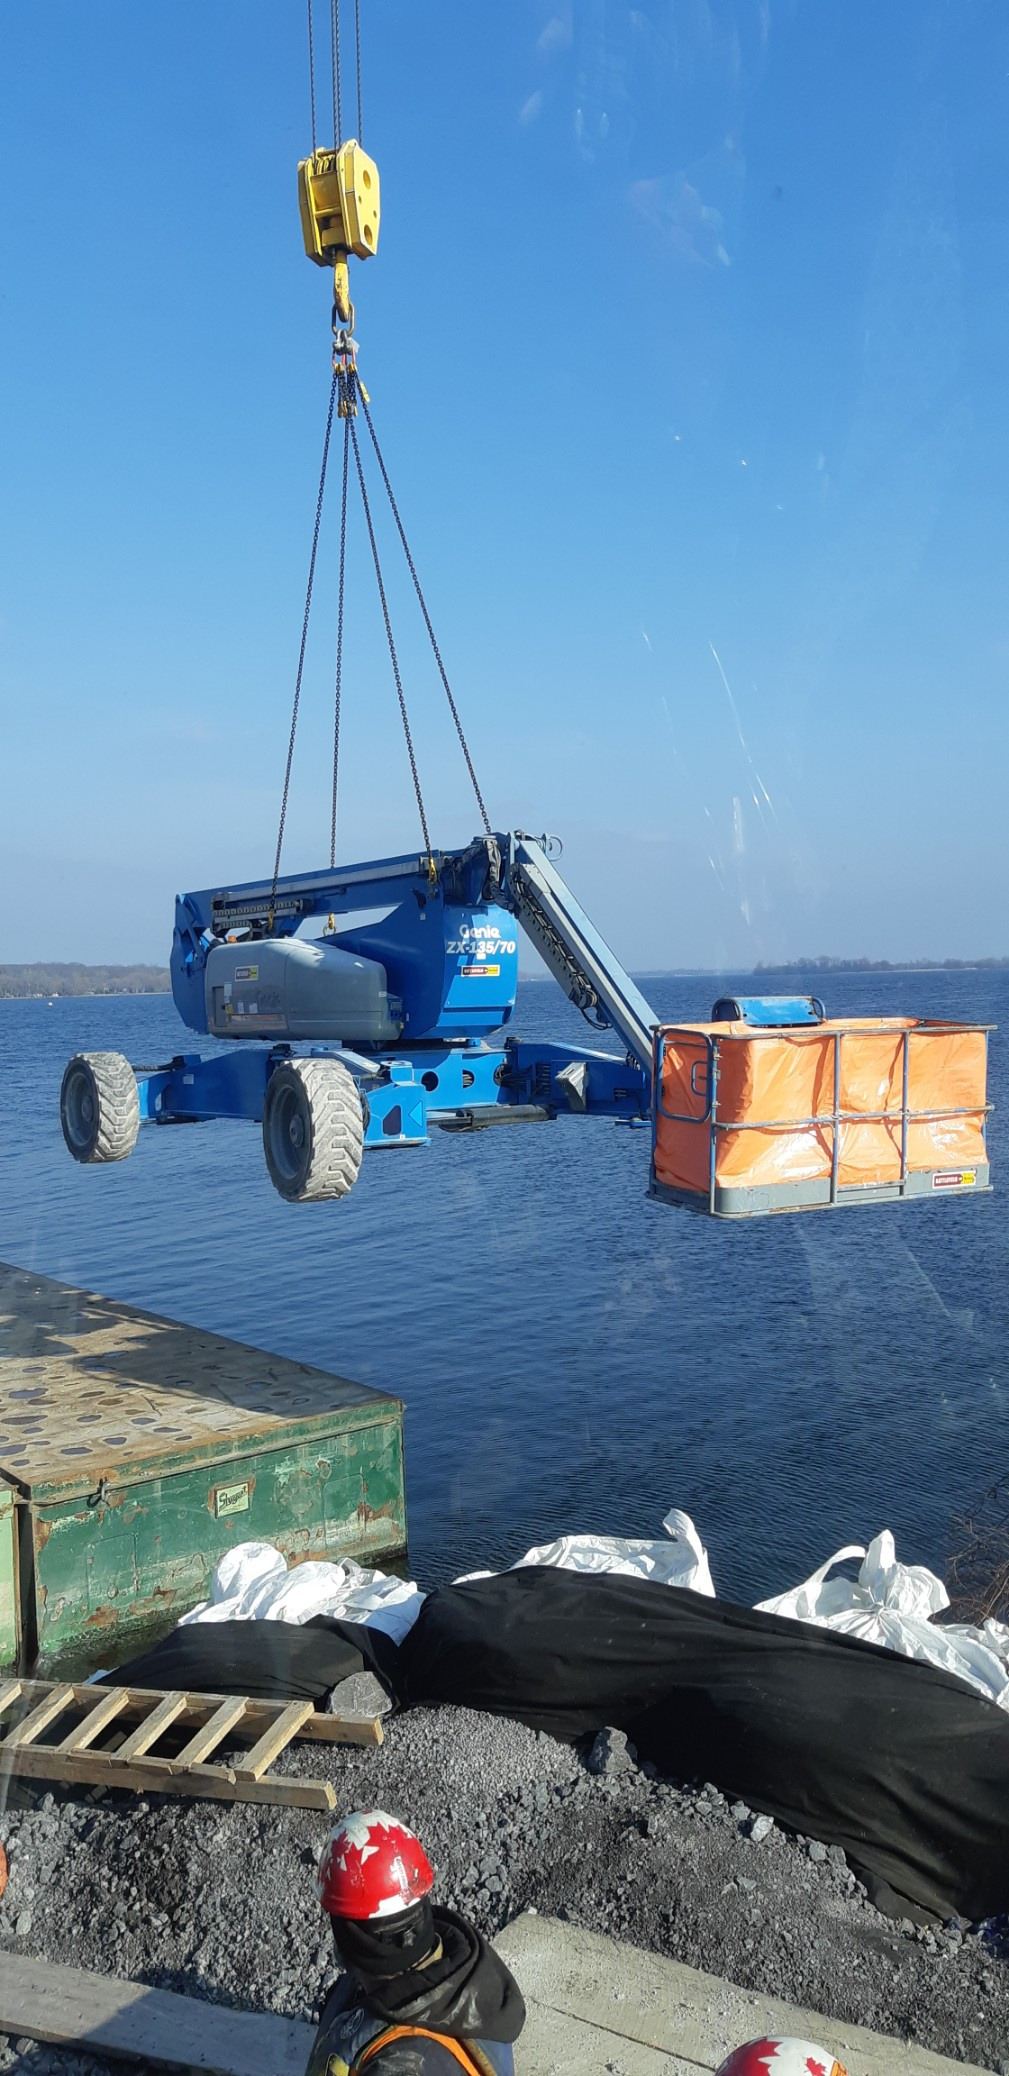 Man lift being removed from the barge